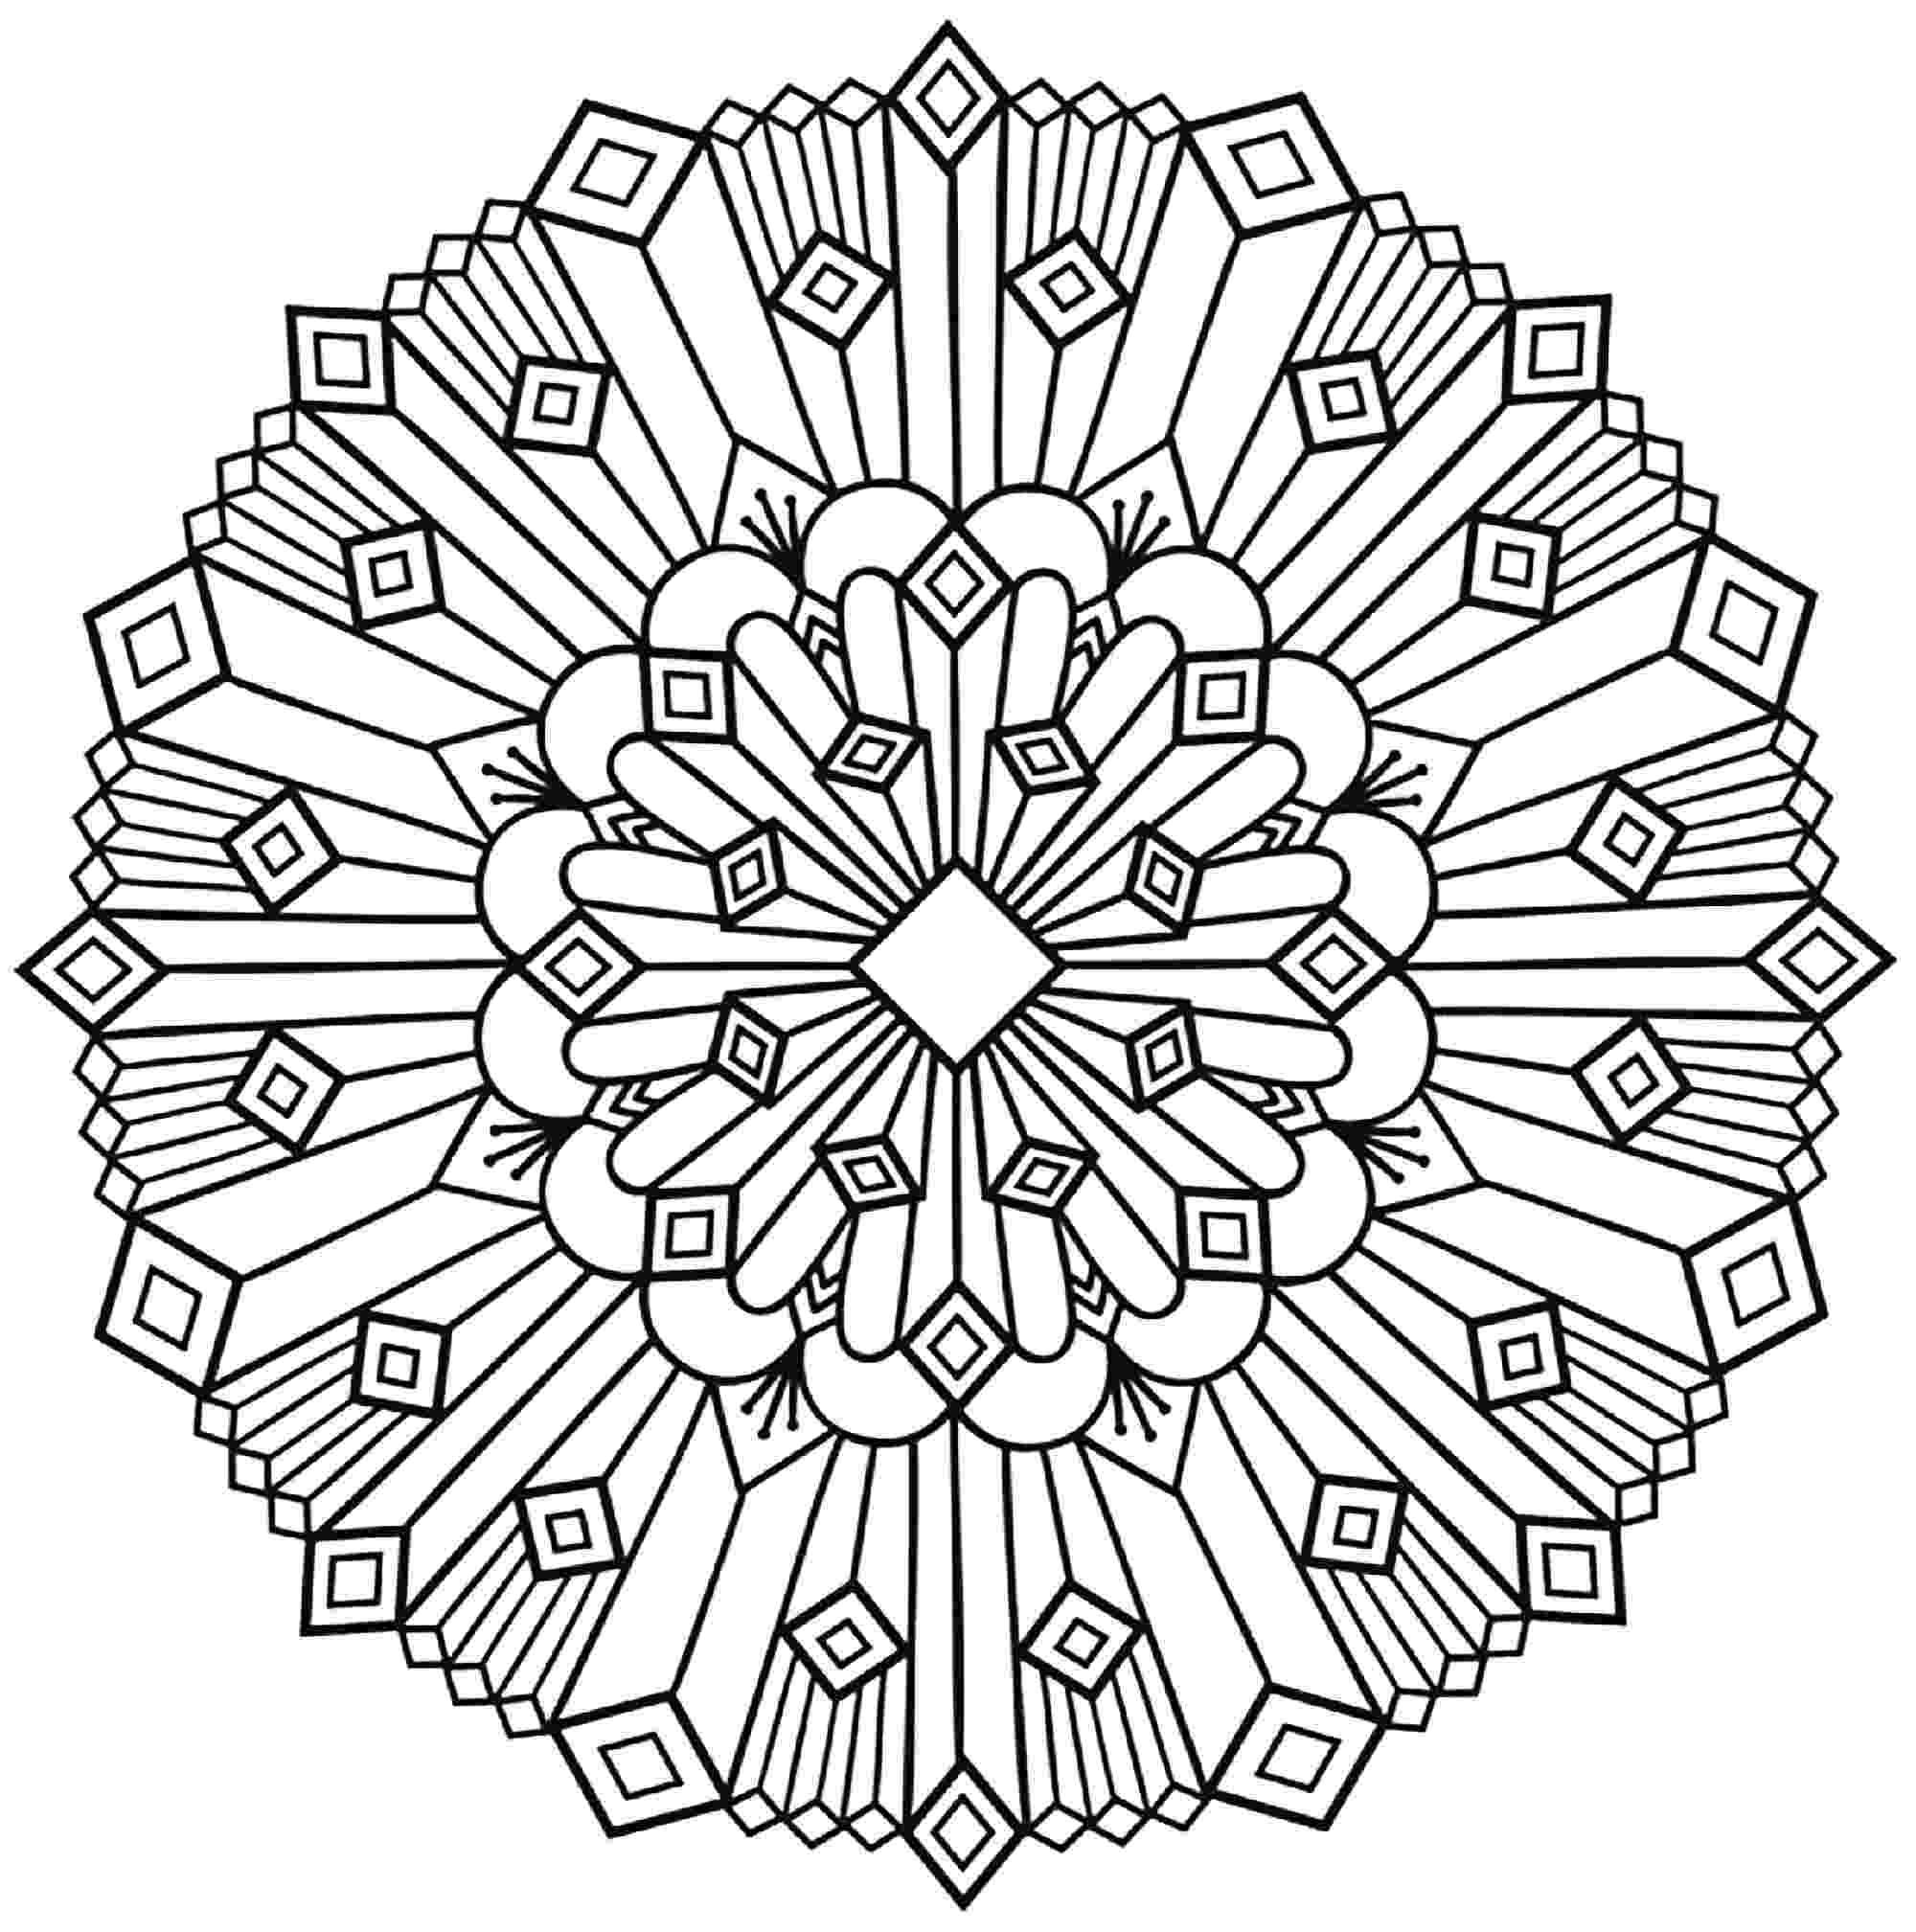 simple mandalas to color free printable mandalas for kids best coloring pages for simple color to mandalas